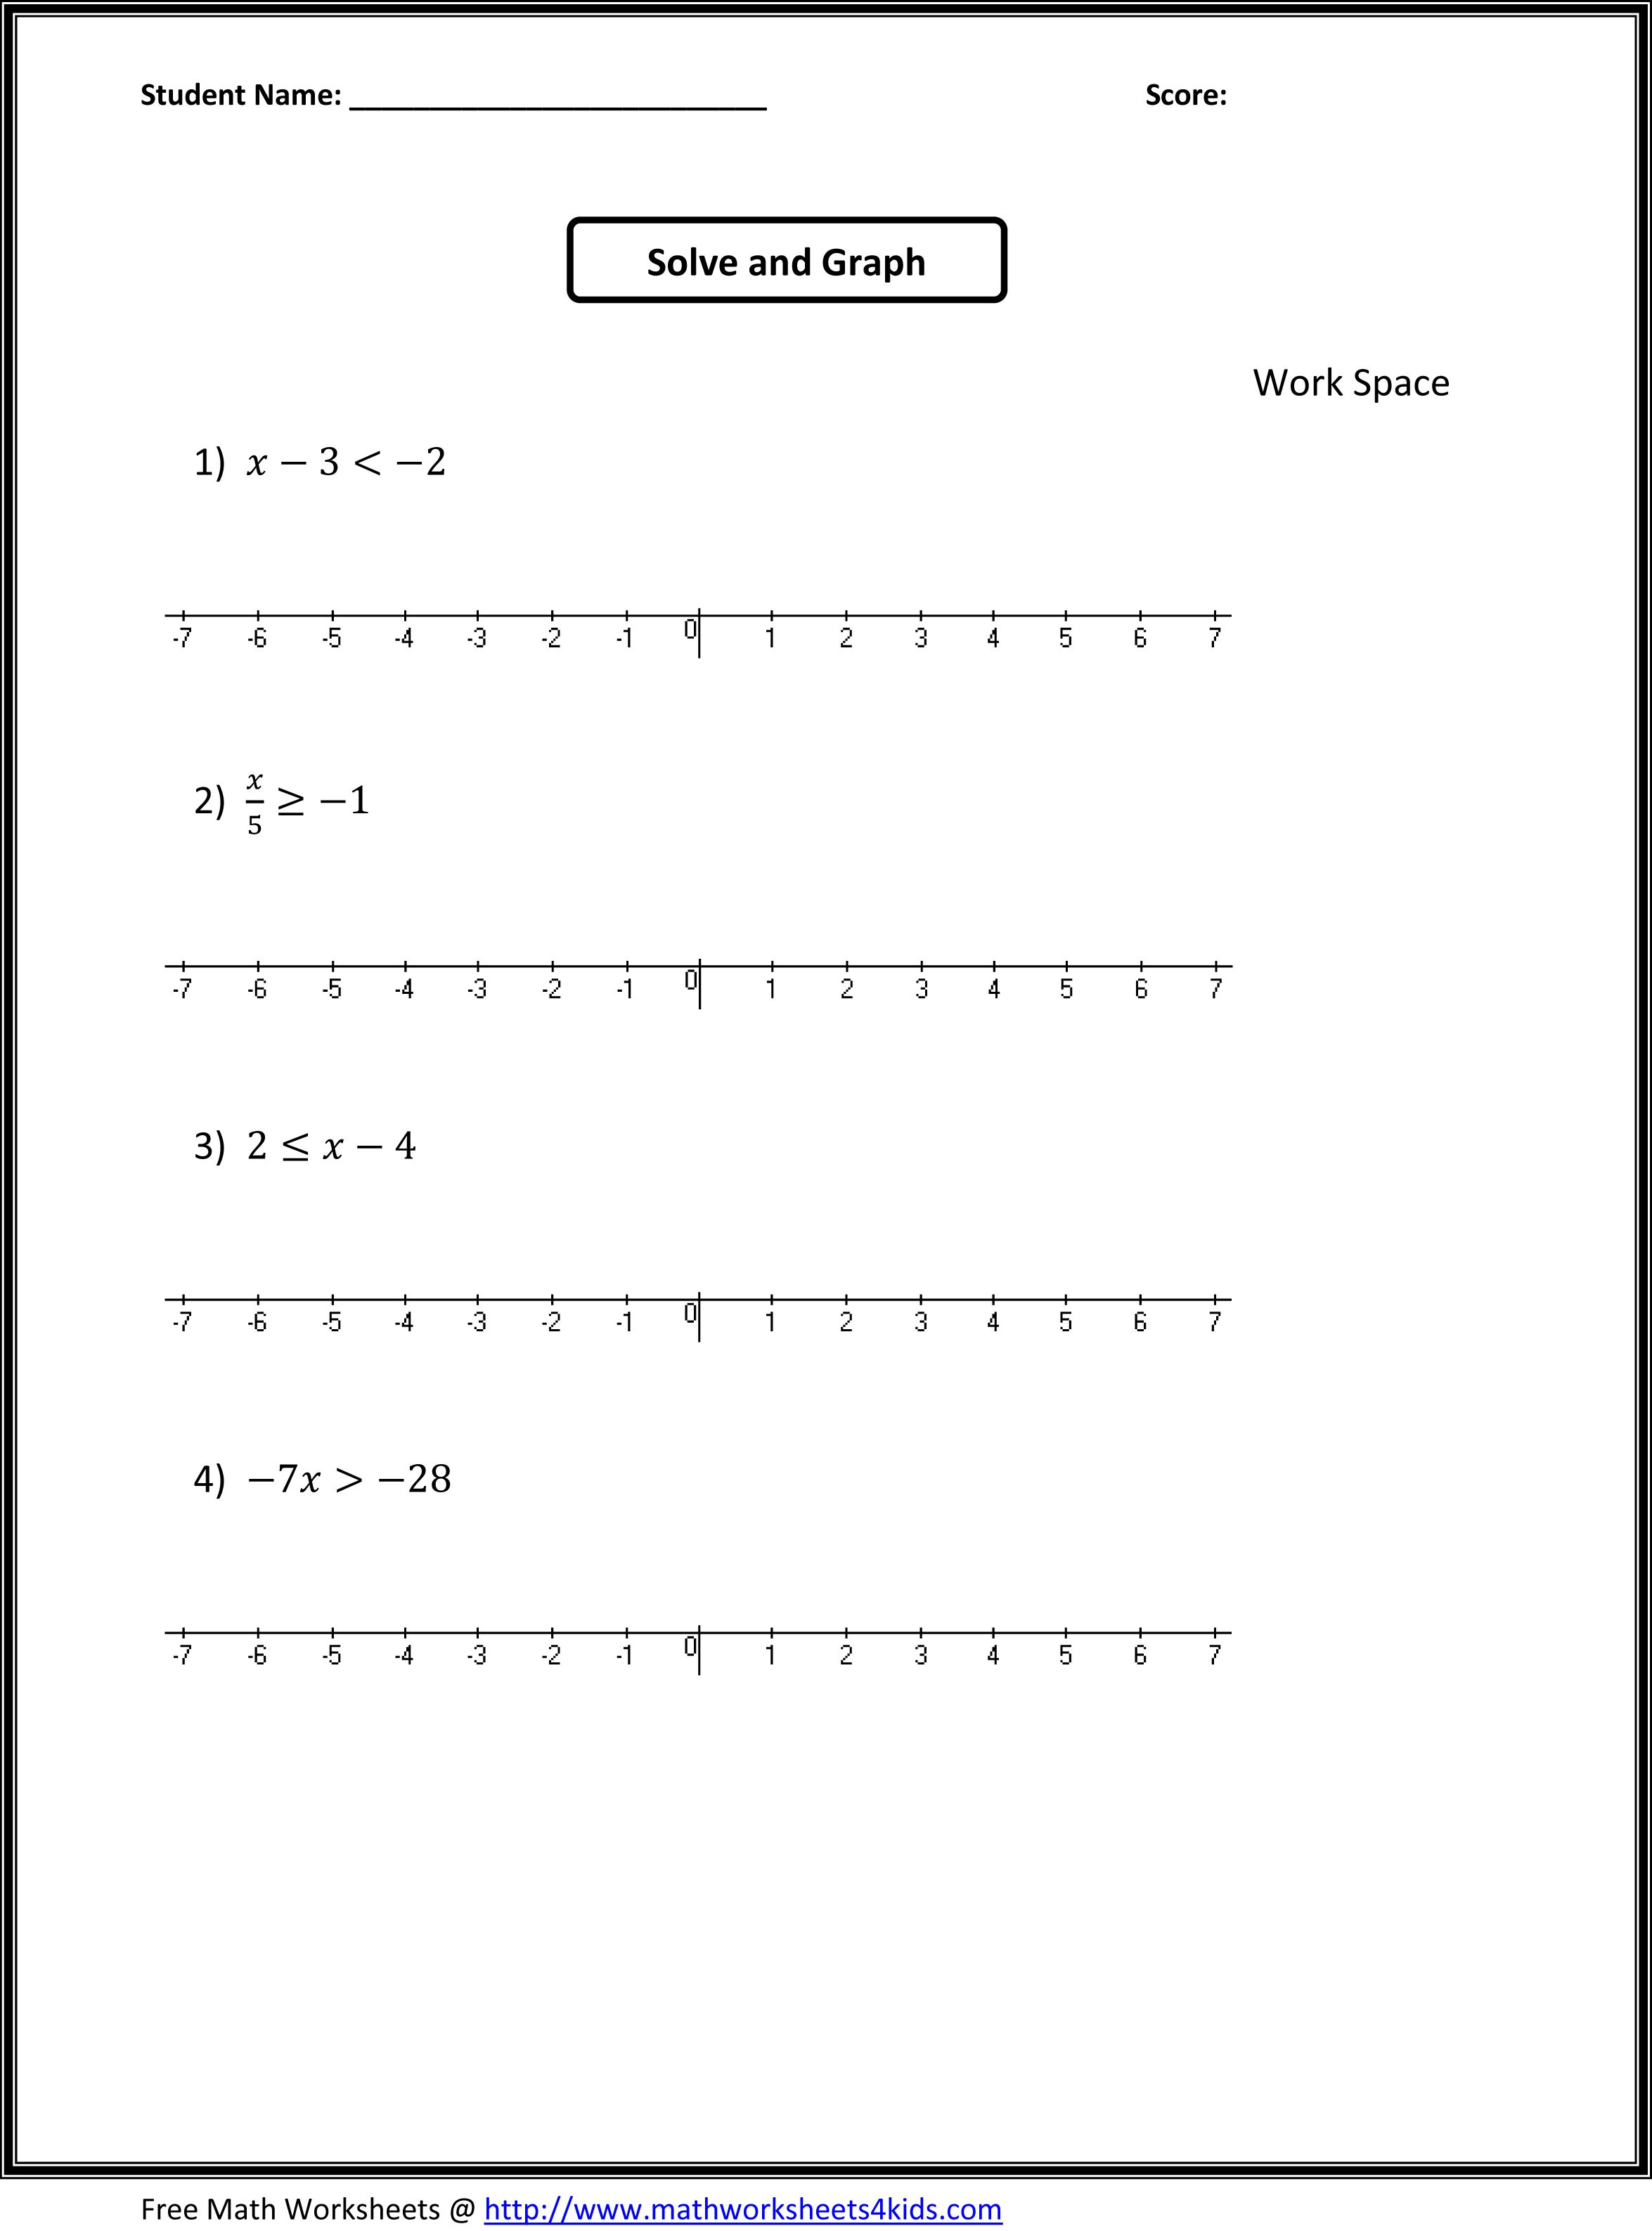 Printables Algebra Worksheets For 7th Grade 7th grade math common core worksheet bundle 5 worksheets and algebra worksheets